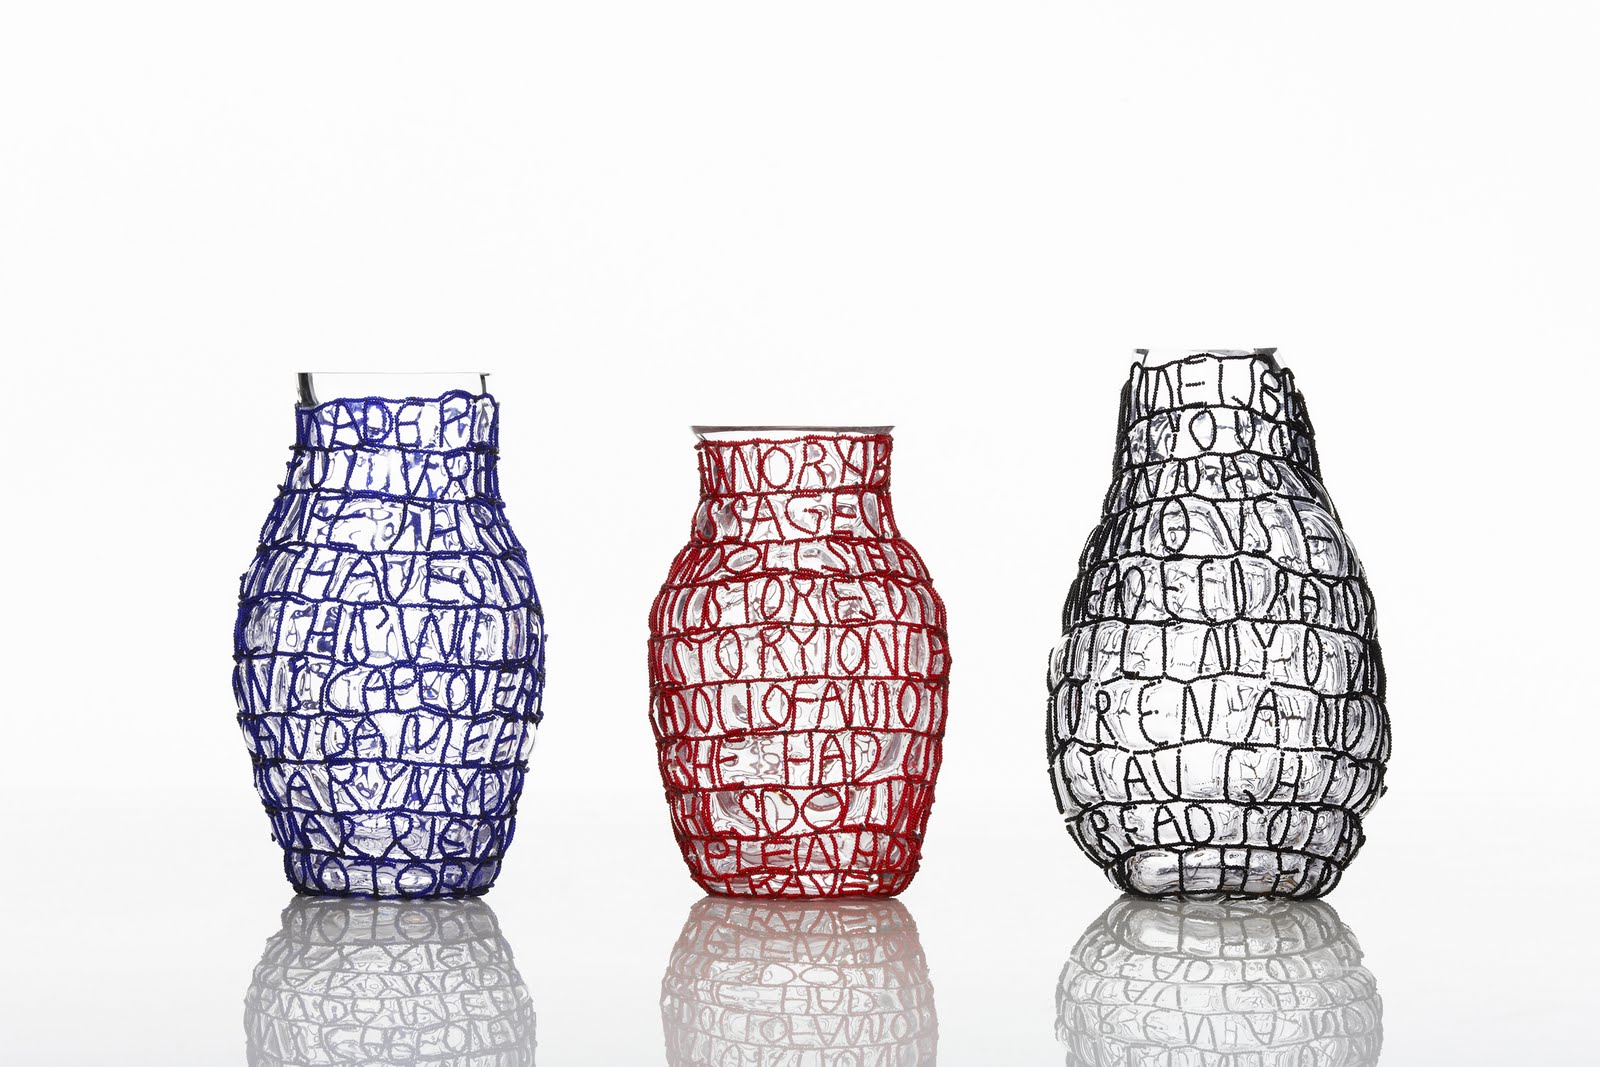 Amazon.com: Decorative Vases